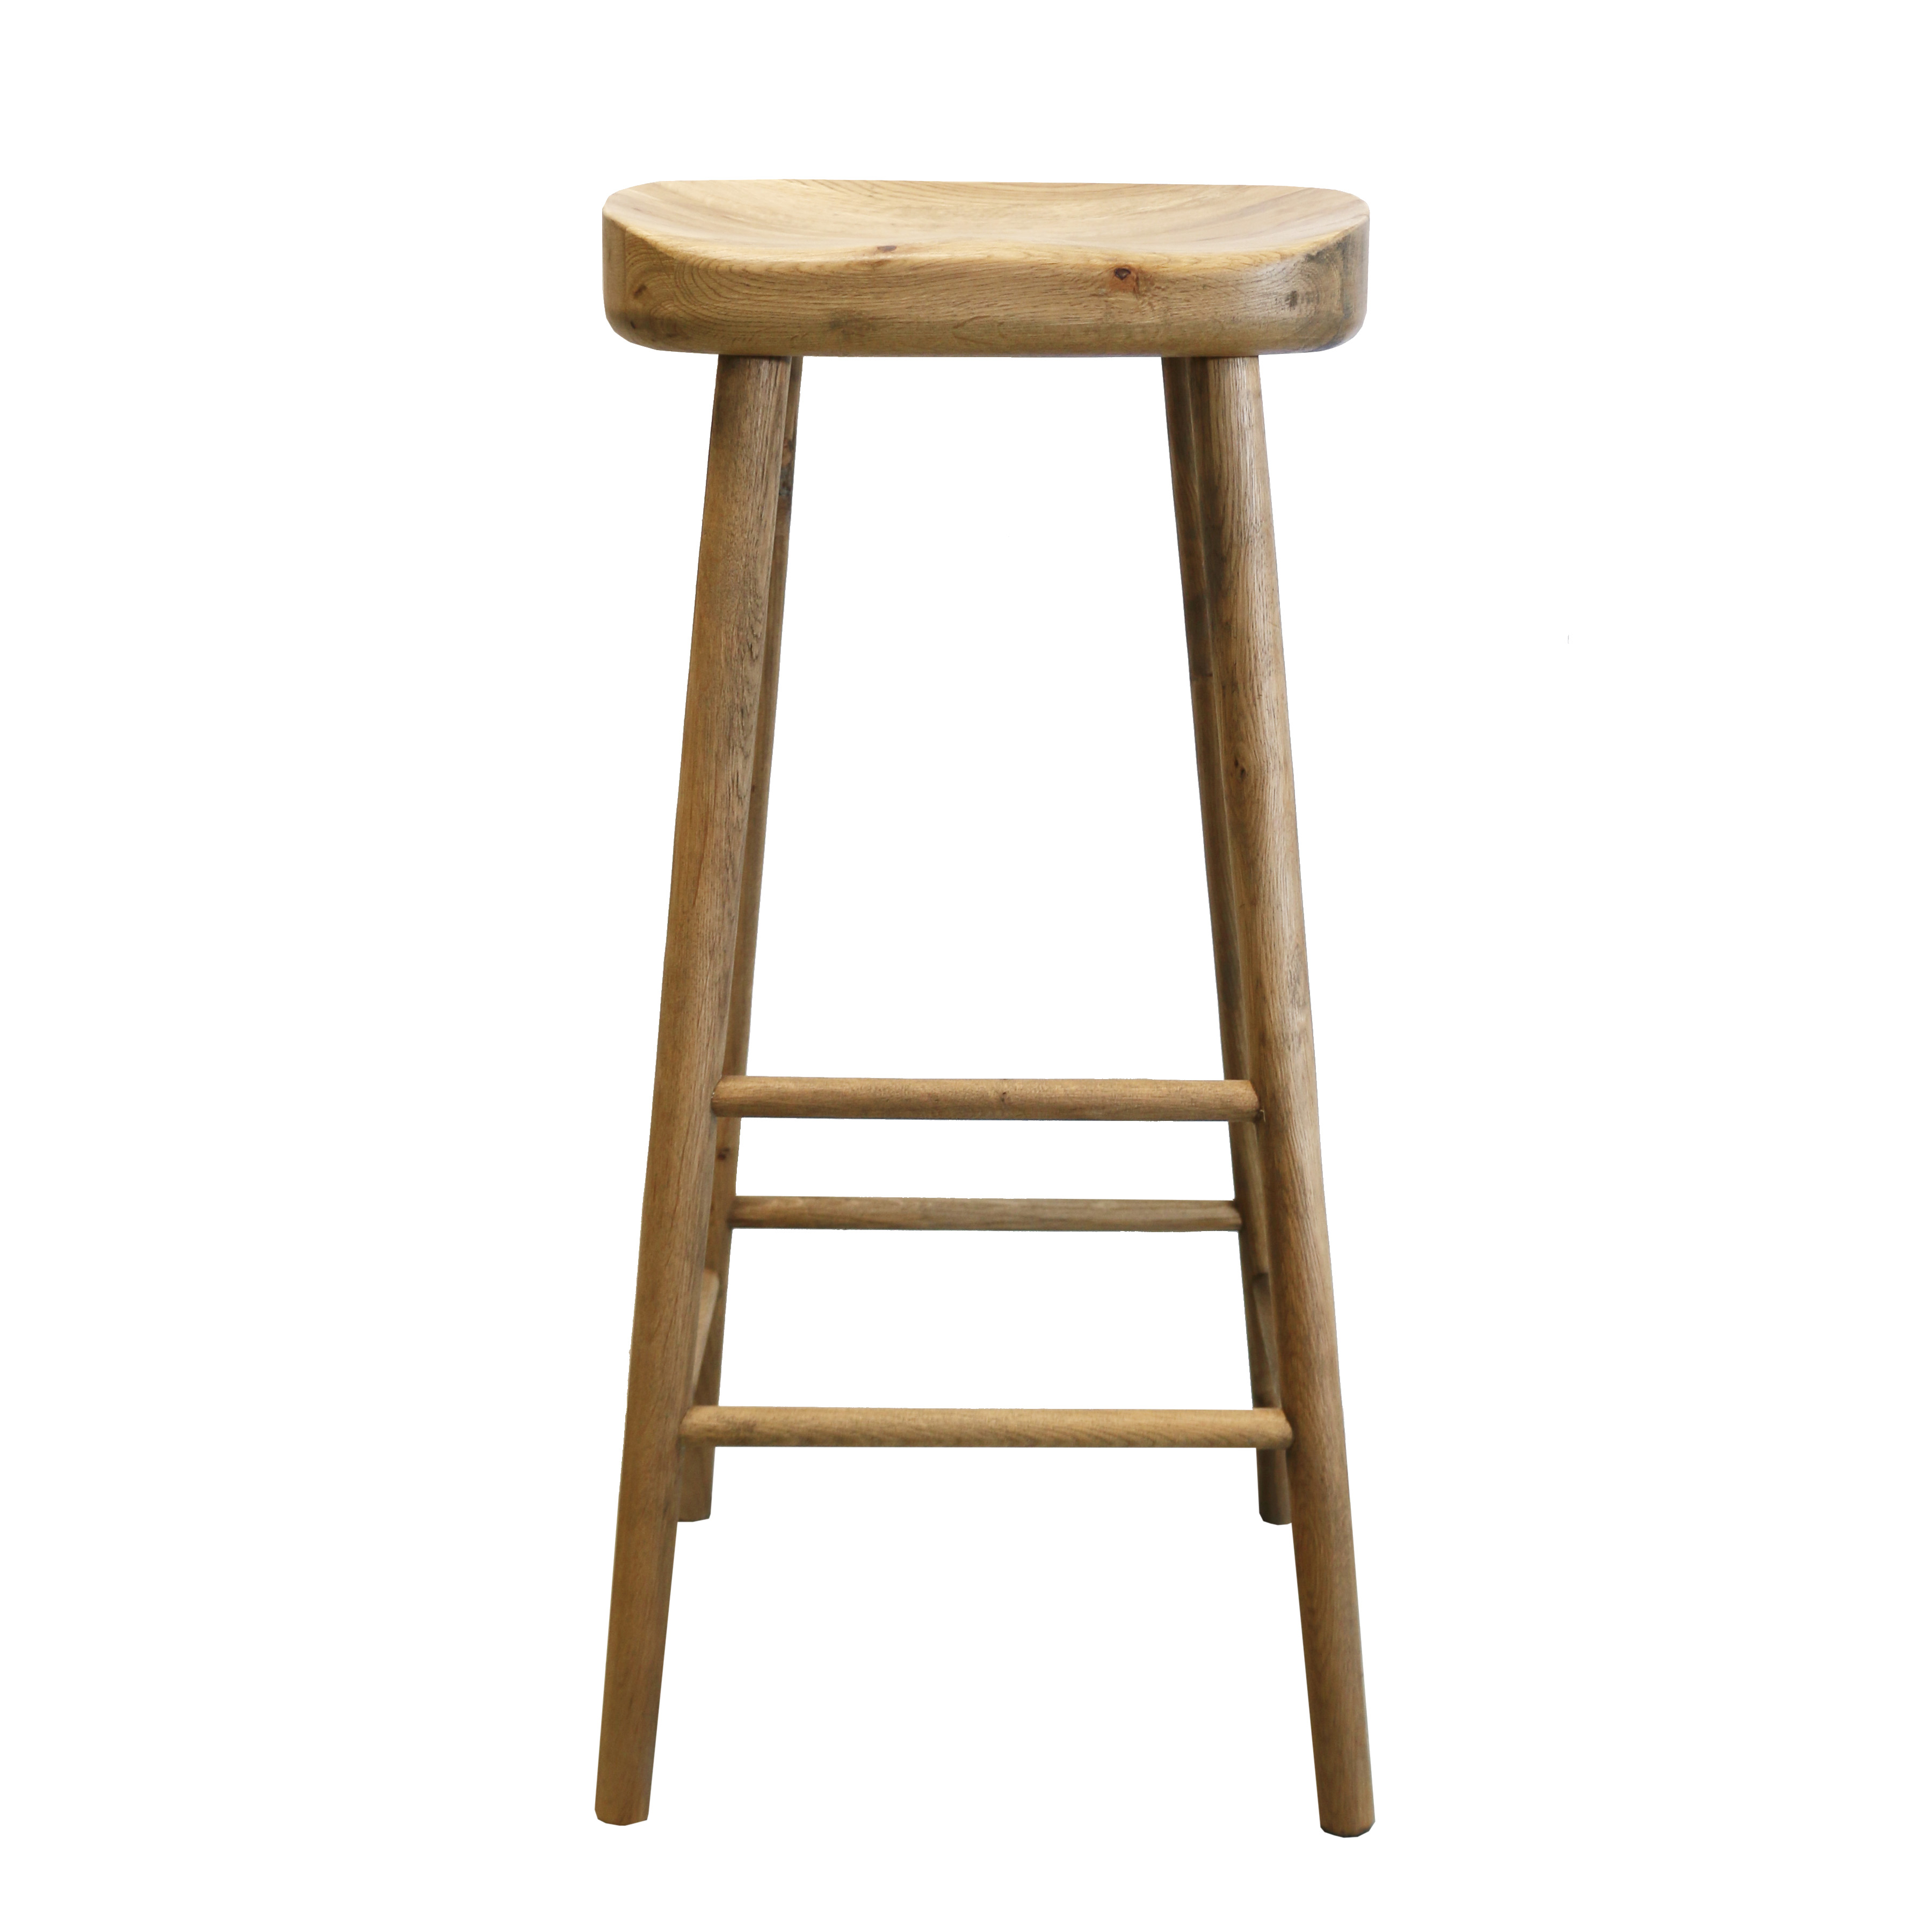 Furniture Update The Best In Bar Stools